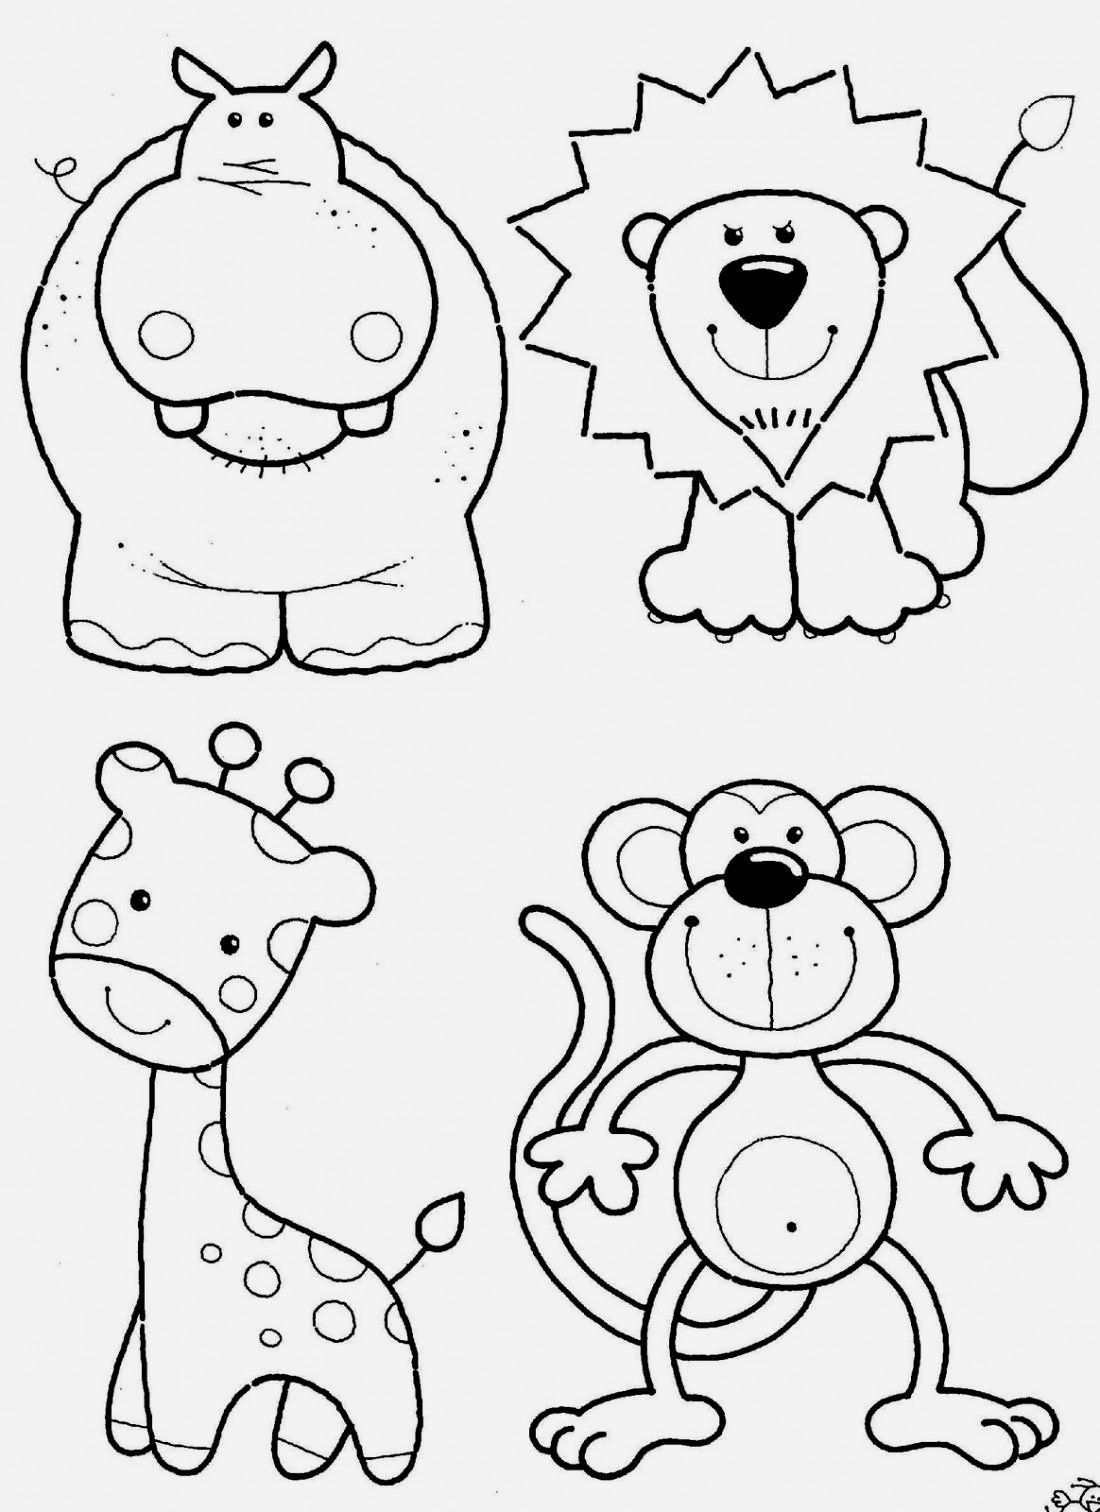 Coloring Wild Animals Lovely Free Coloring Pages For Toddlers Wild Animals Art Zoo Coloring Pages Animal Coloring Books Giraffe Coloring Pages